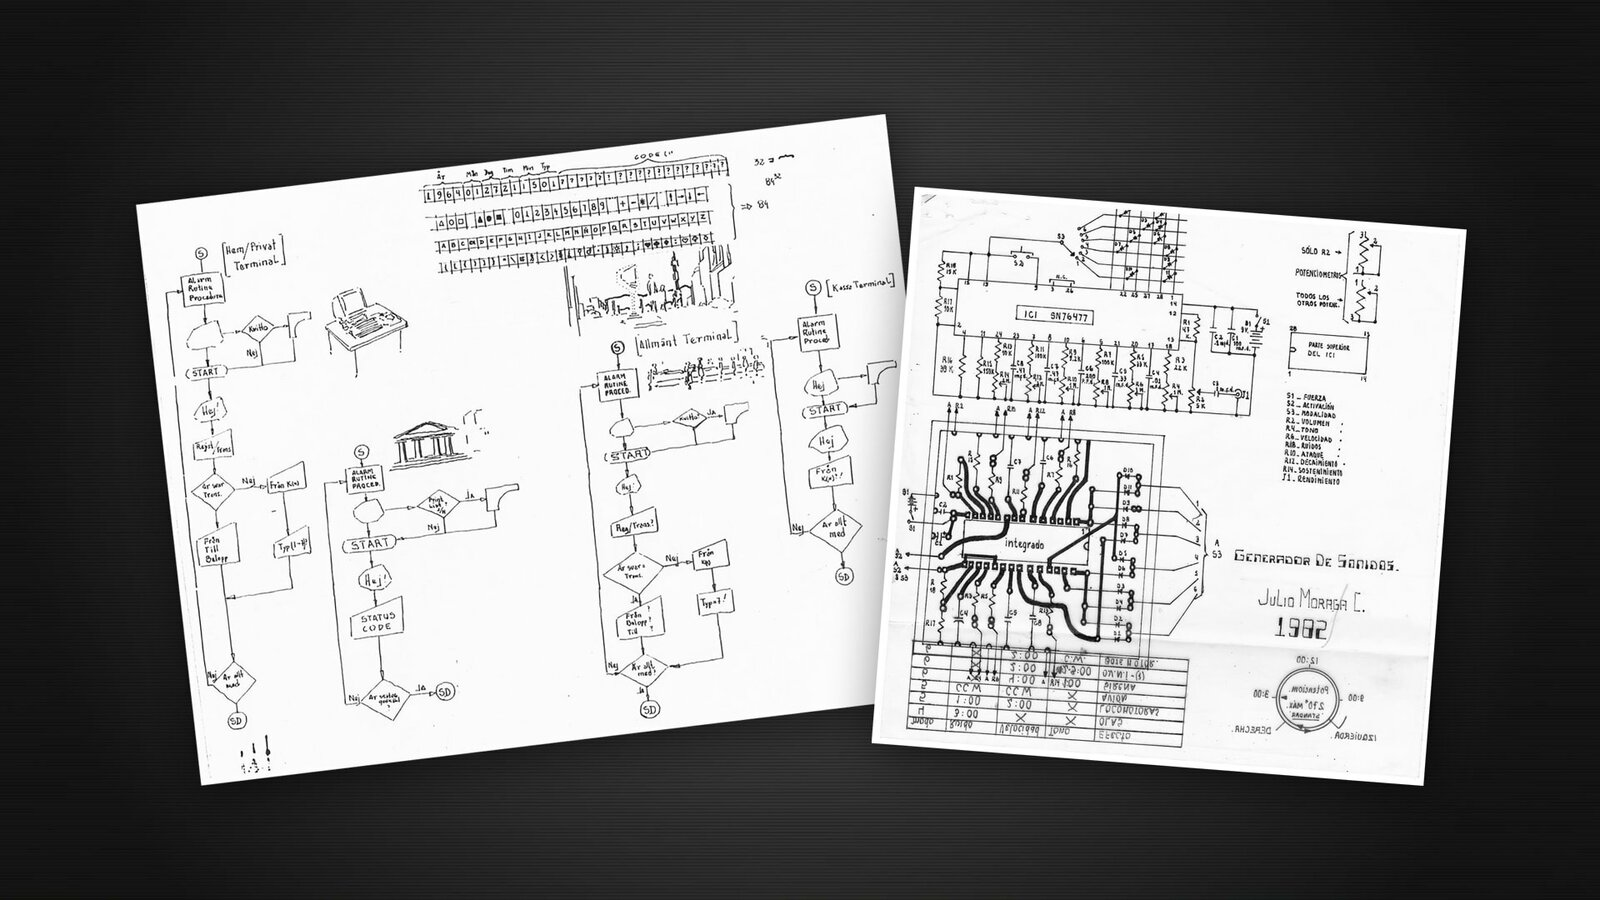 XBitcoin and first sound machine, very thin line drawings (1992 and 1982)